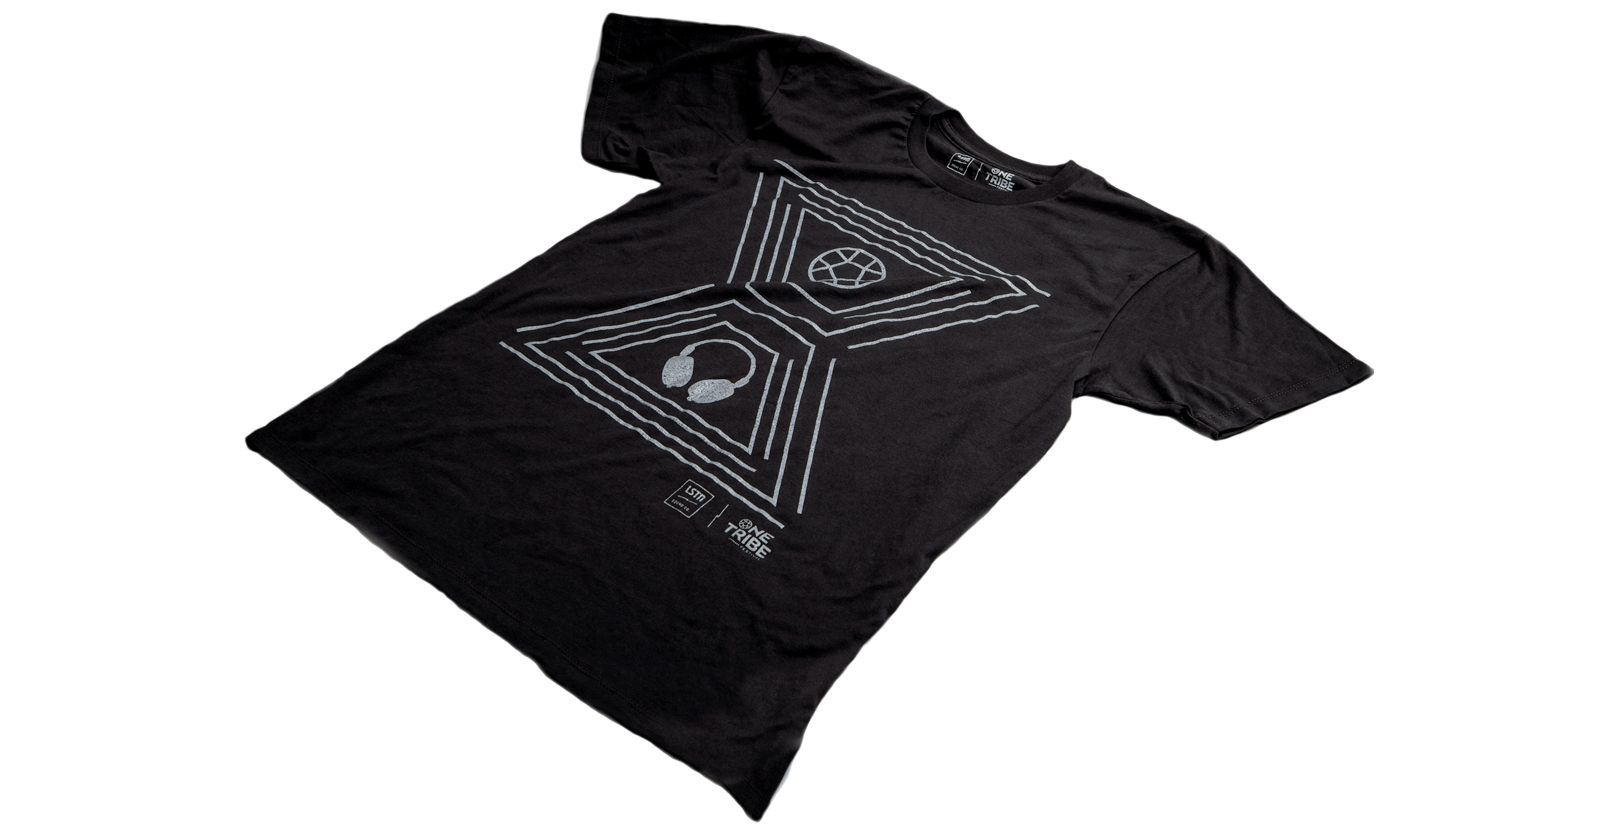 LSTN x One Tribe T-shirt